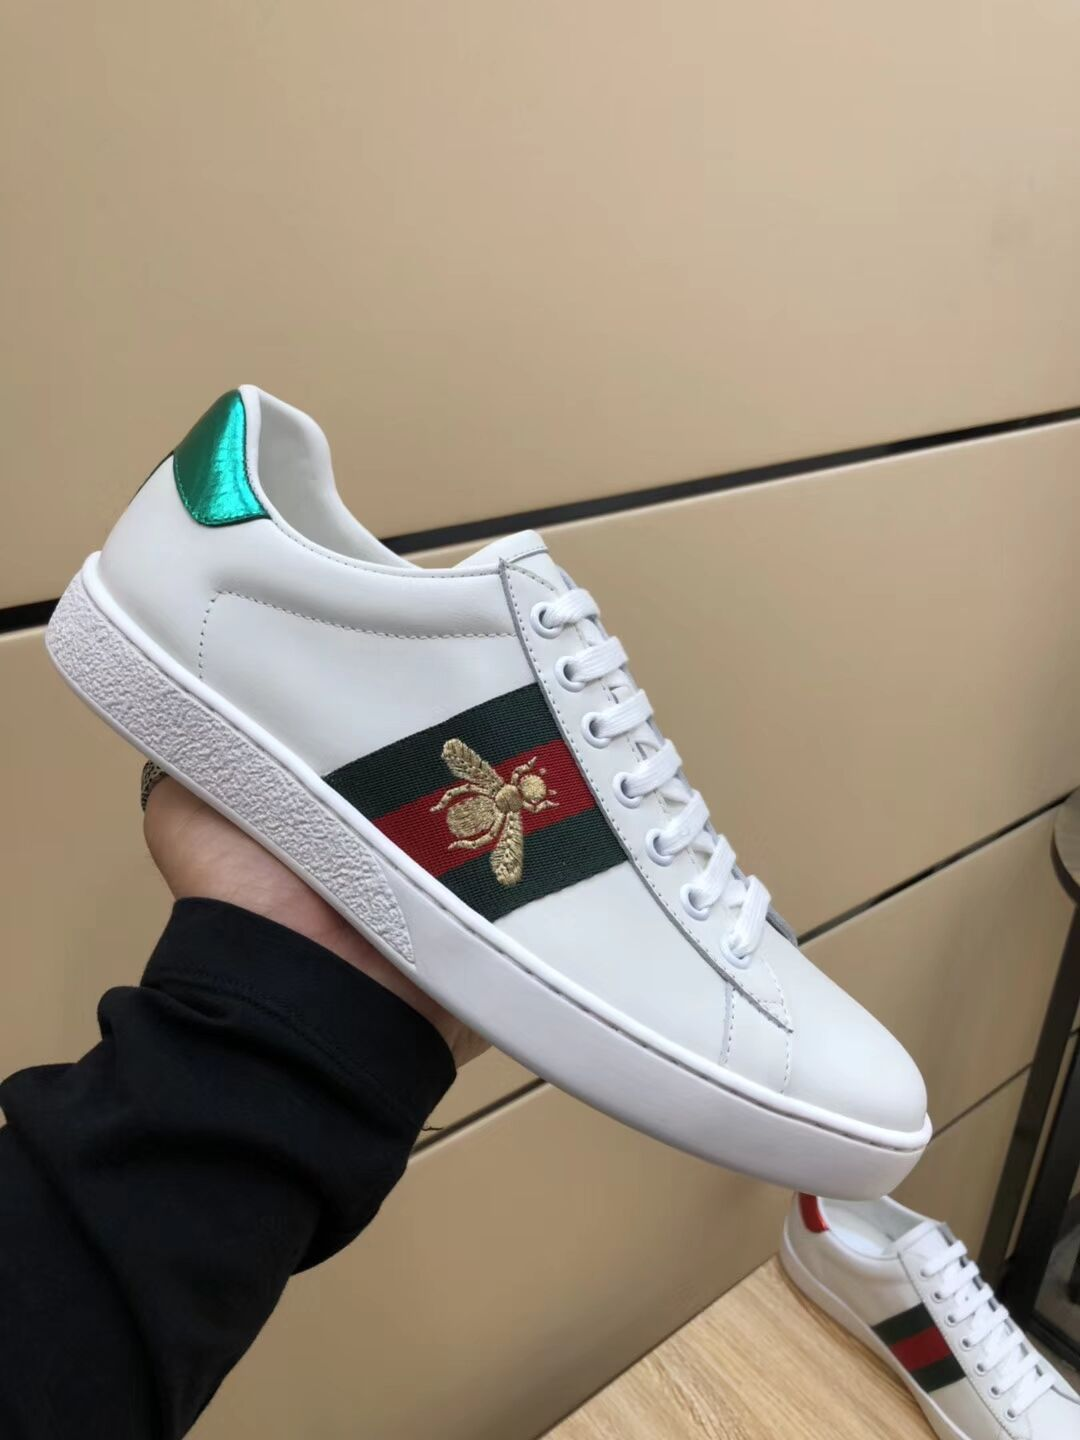 a9daddf3bda Mens Gucci Sneakers 1 1 original quality (come with A complete set of  packaging · Gucci Shoes for MEN  900230